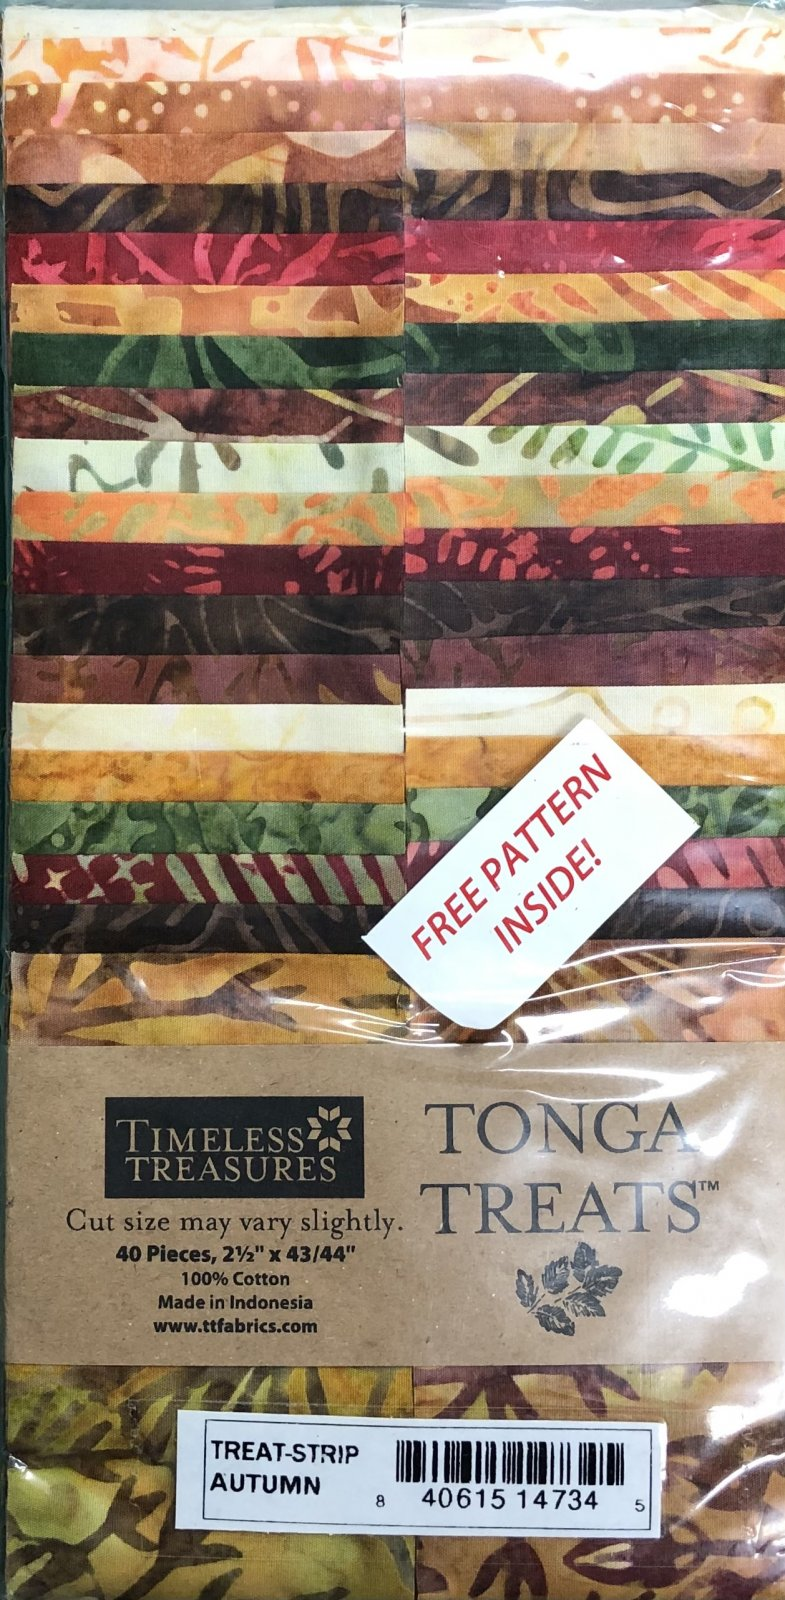 Tonga Treats - 40 2 1/2 Strips - Autumn